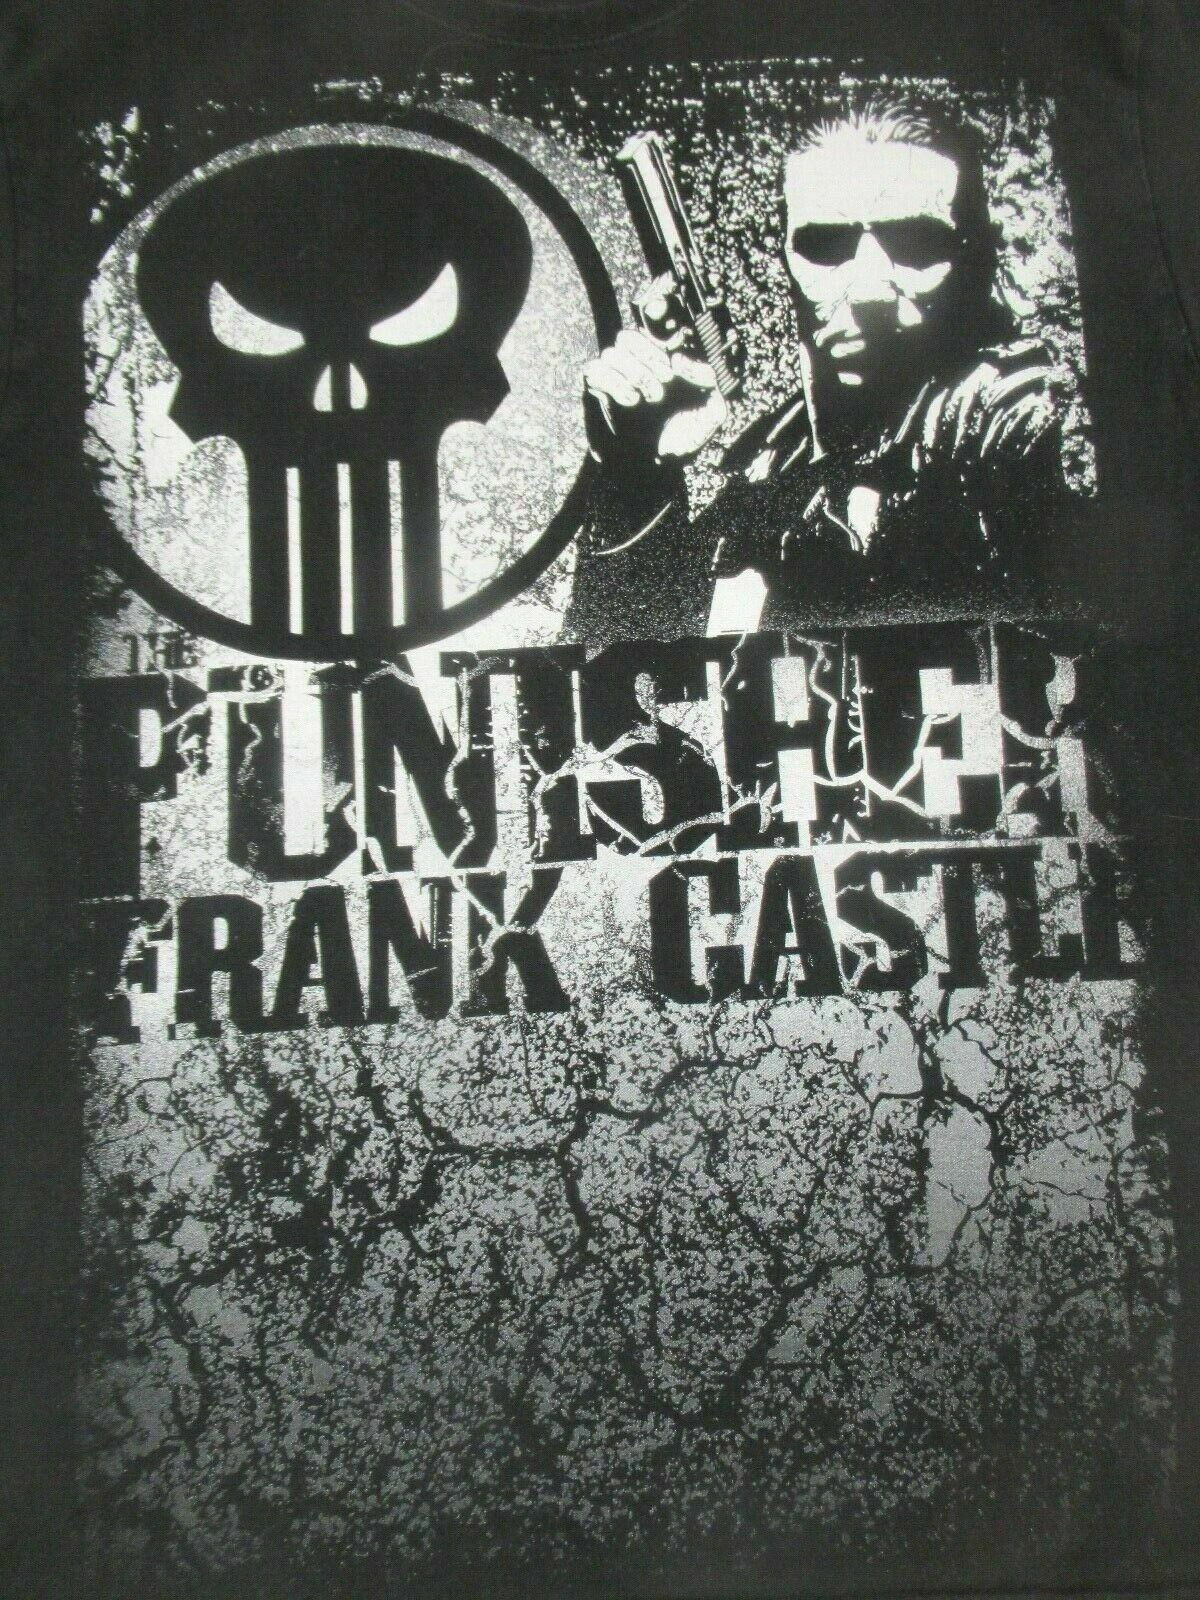 Rare Marvel The Punisher Comic Book Style Frank Castle -Black Xl T-Shirt- A384 image